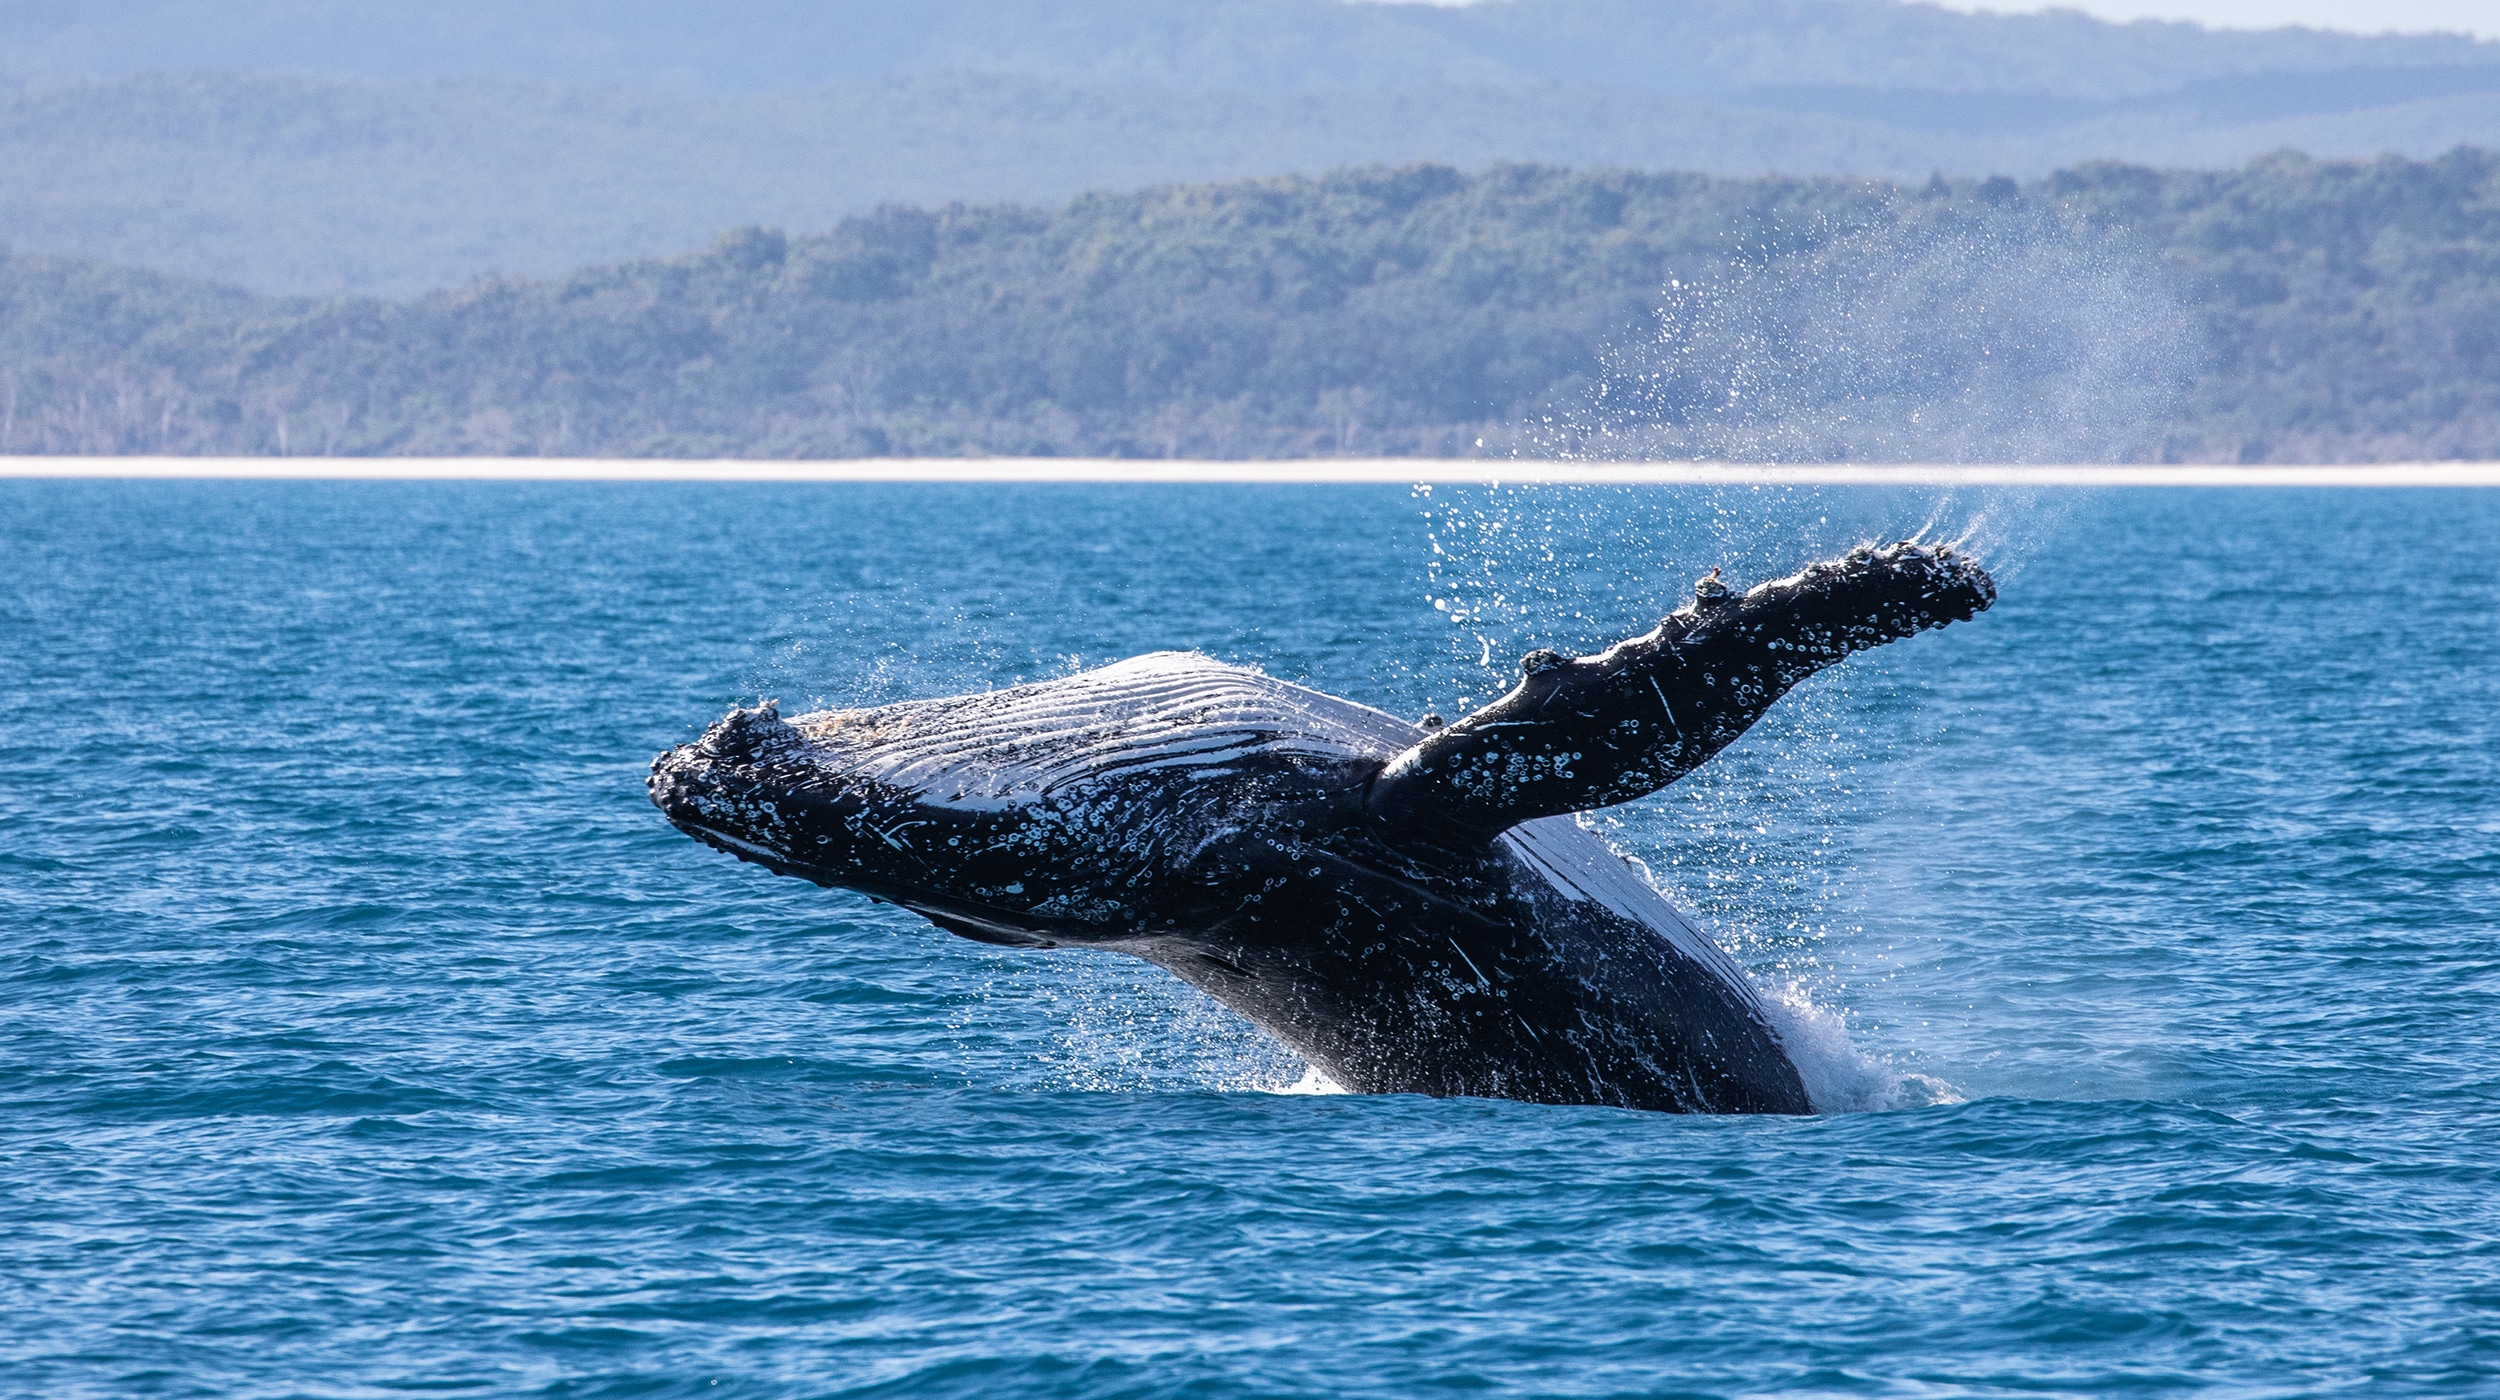 Whale-watching fees typically include a donation to a conservation fund, but it's worth doing your research before booking a tour. Some outfits also contribute to scientific research: crews and guests add ID photos to a database, expanding knowledge of whale populations and their movements. Image: Getty